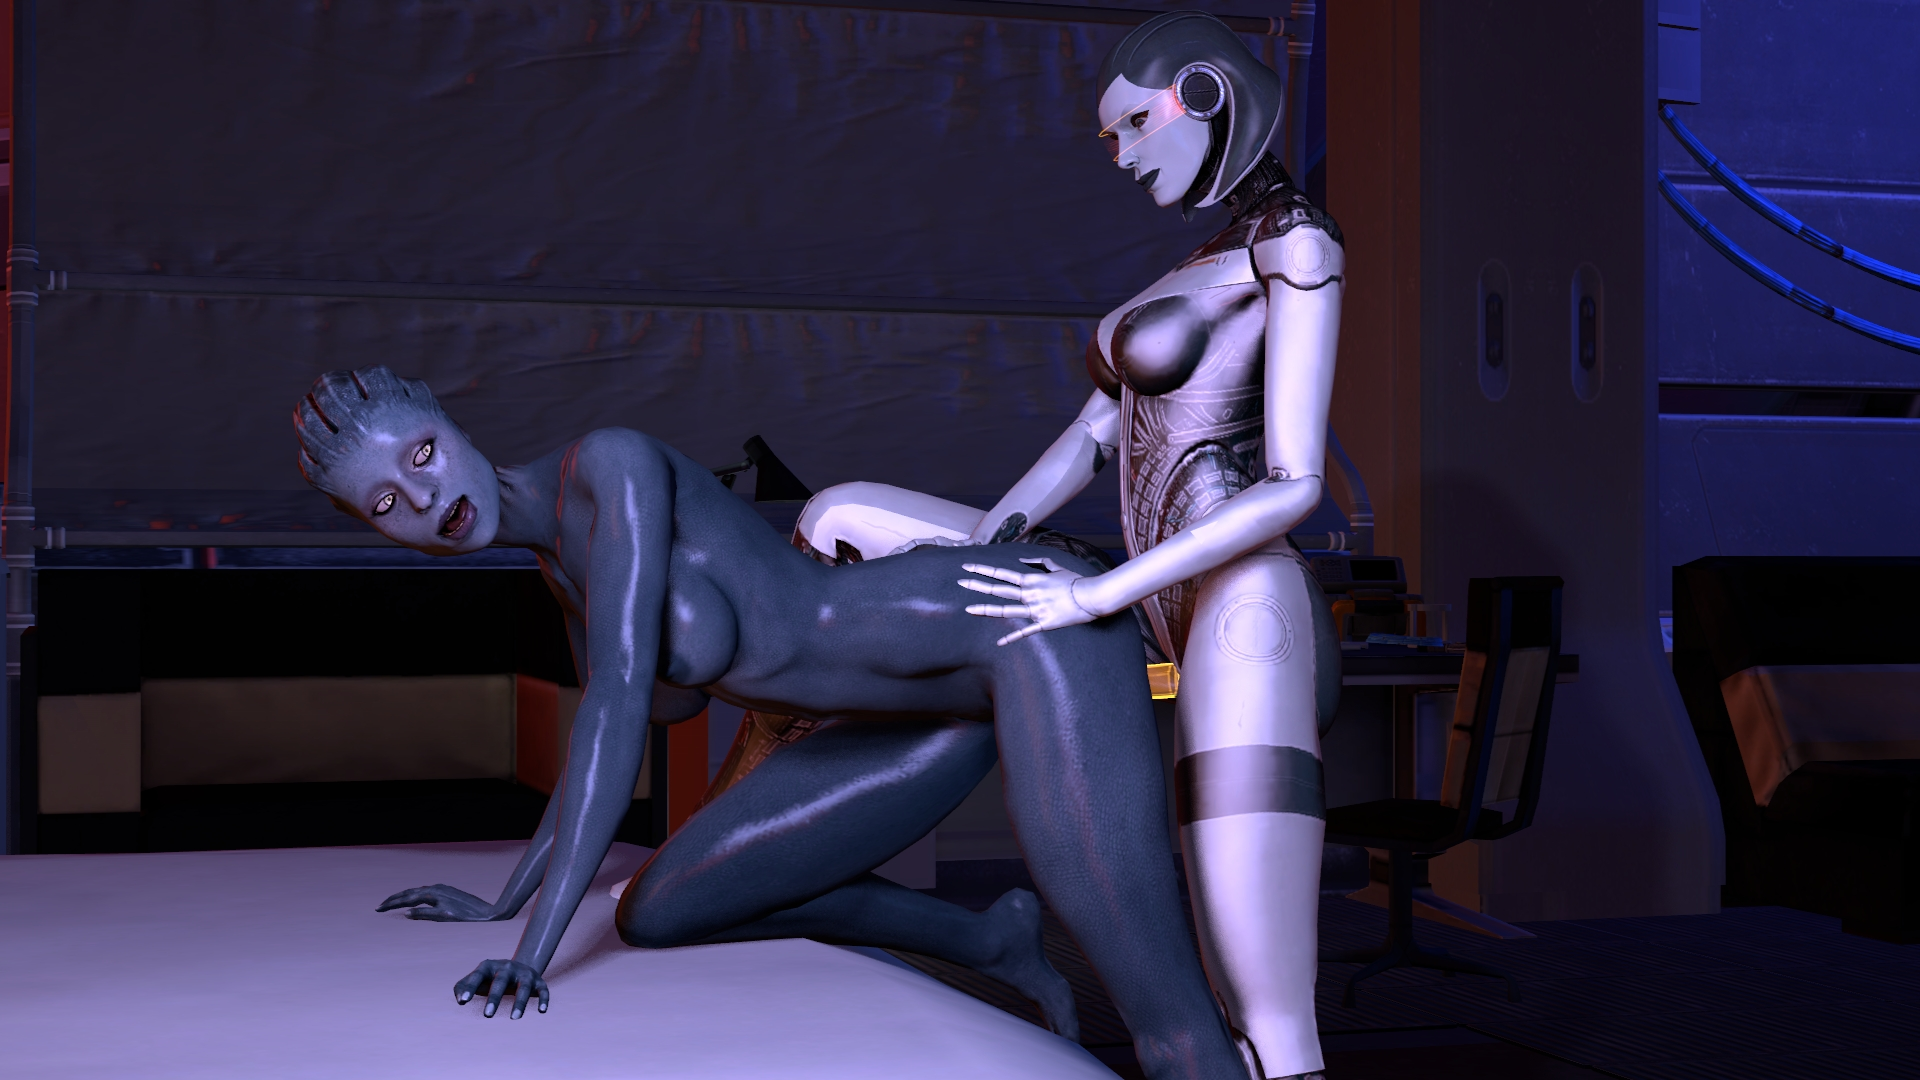 nude-asari-from-mass-effect-bbw-hot-hardcore